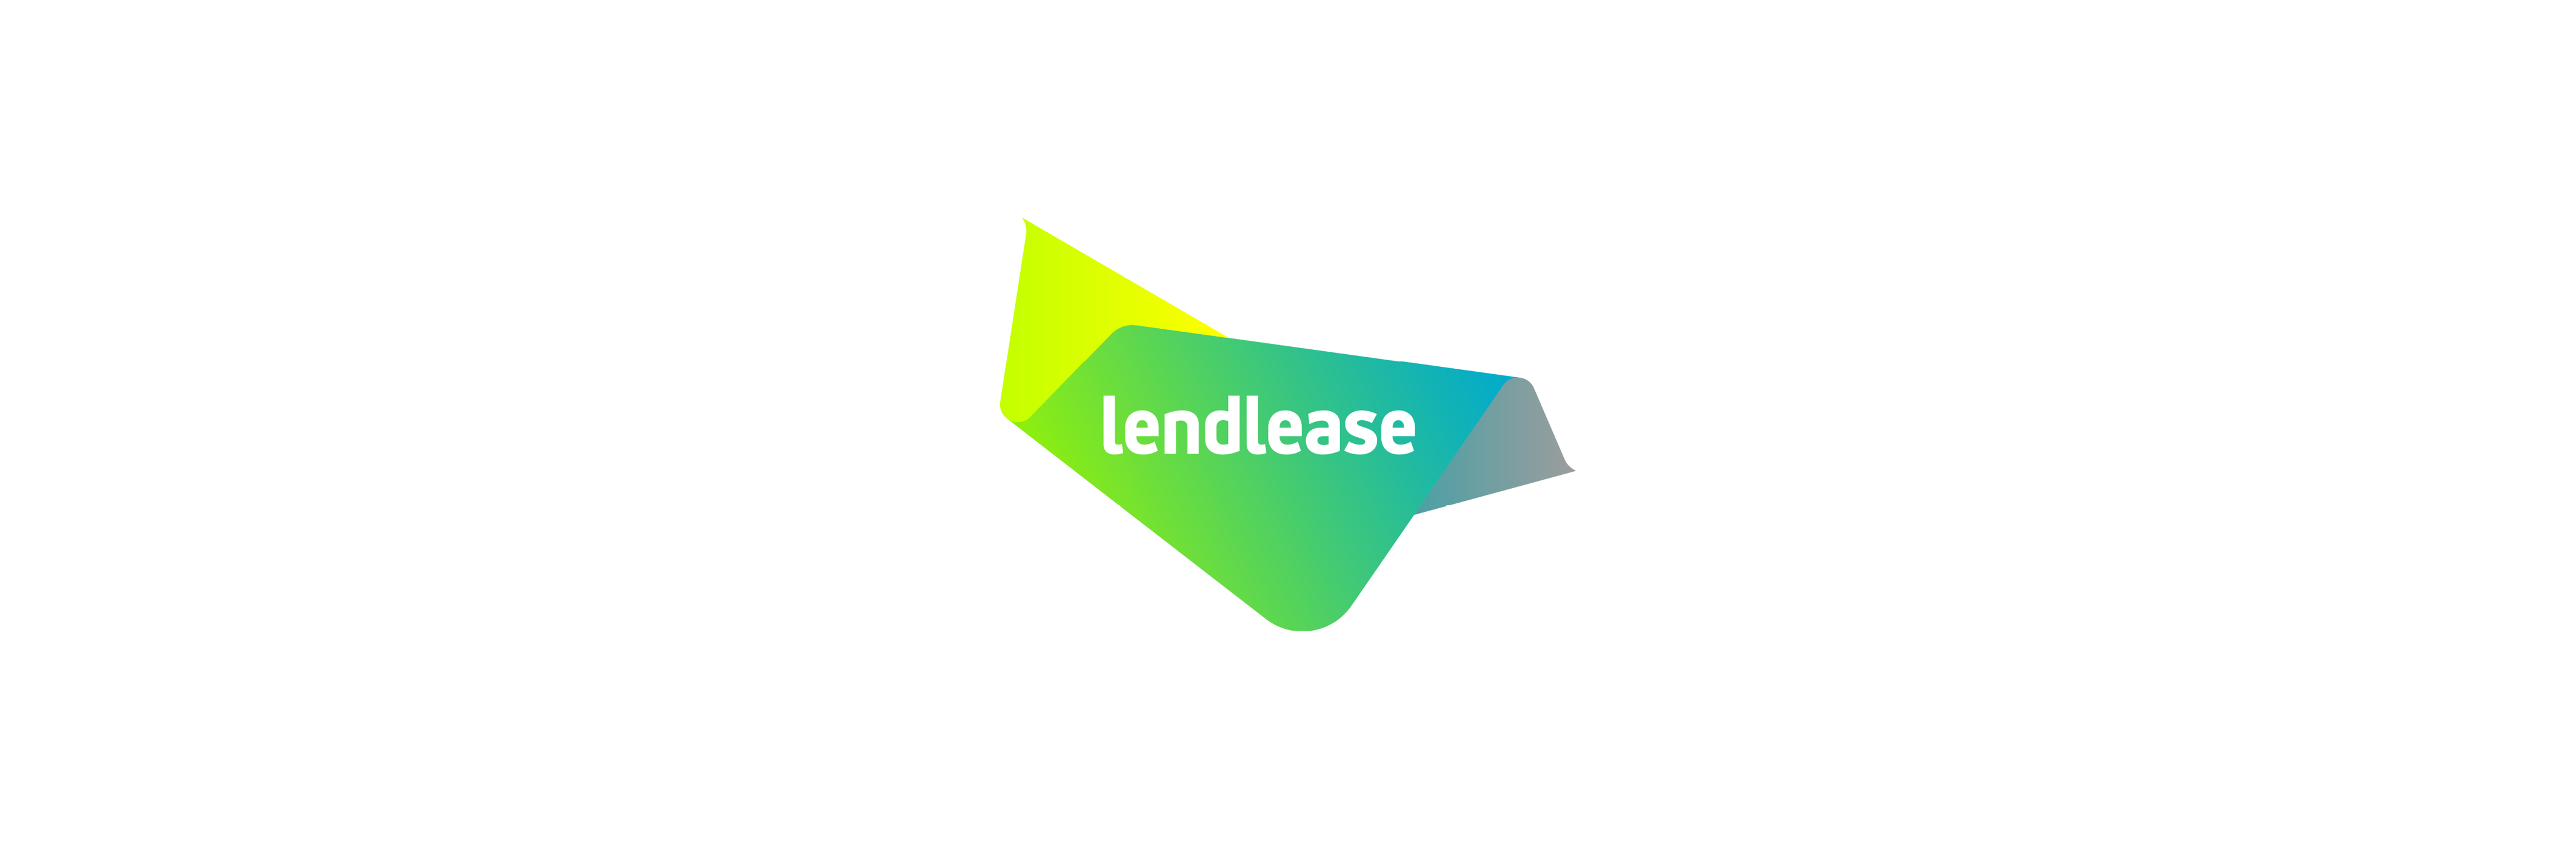 management of lend lease Project manager 1 star star star star star  advice to management  i have been working at lend lease full-time (more than 5 years).